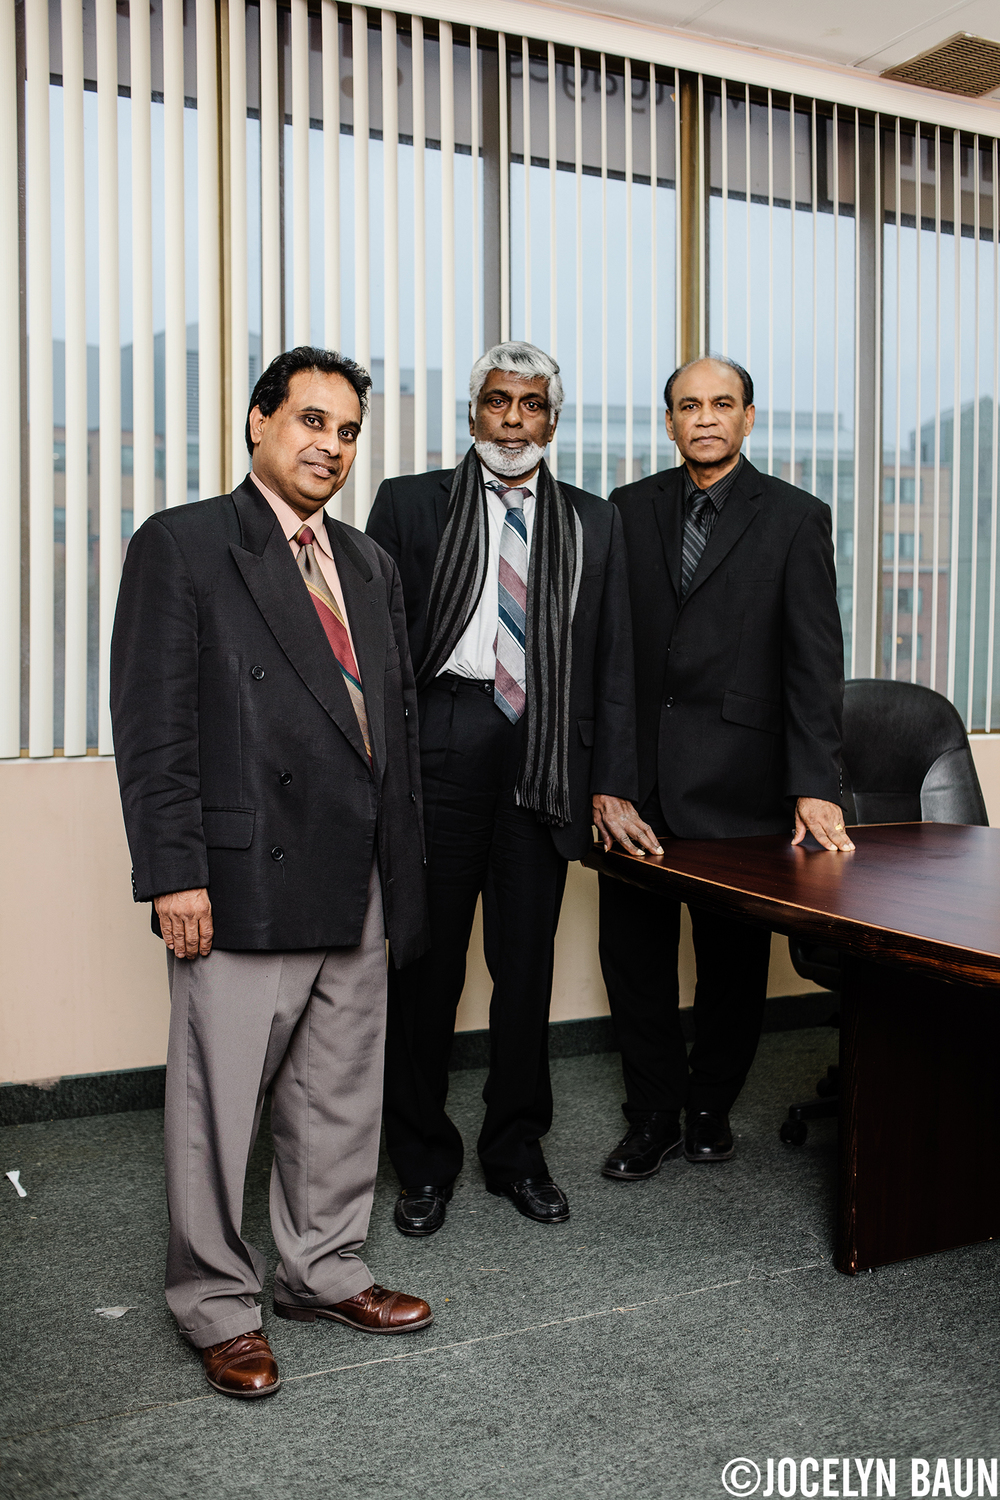 Three members of the Transnational Government of Tamil Eelam - Media Coordinator Roy Wignarajah, Deputy Prime Minister Dr. Ram Sivalingam and Secretary of Information Sam Sangarisivam - in their Toronto office.